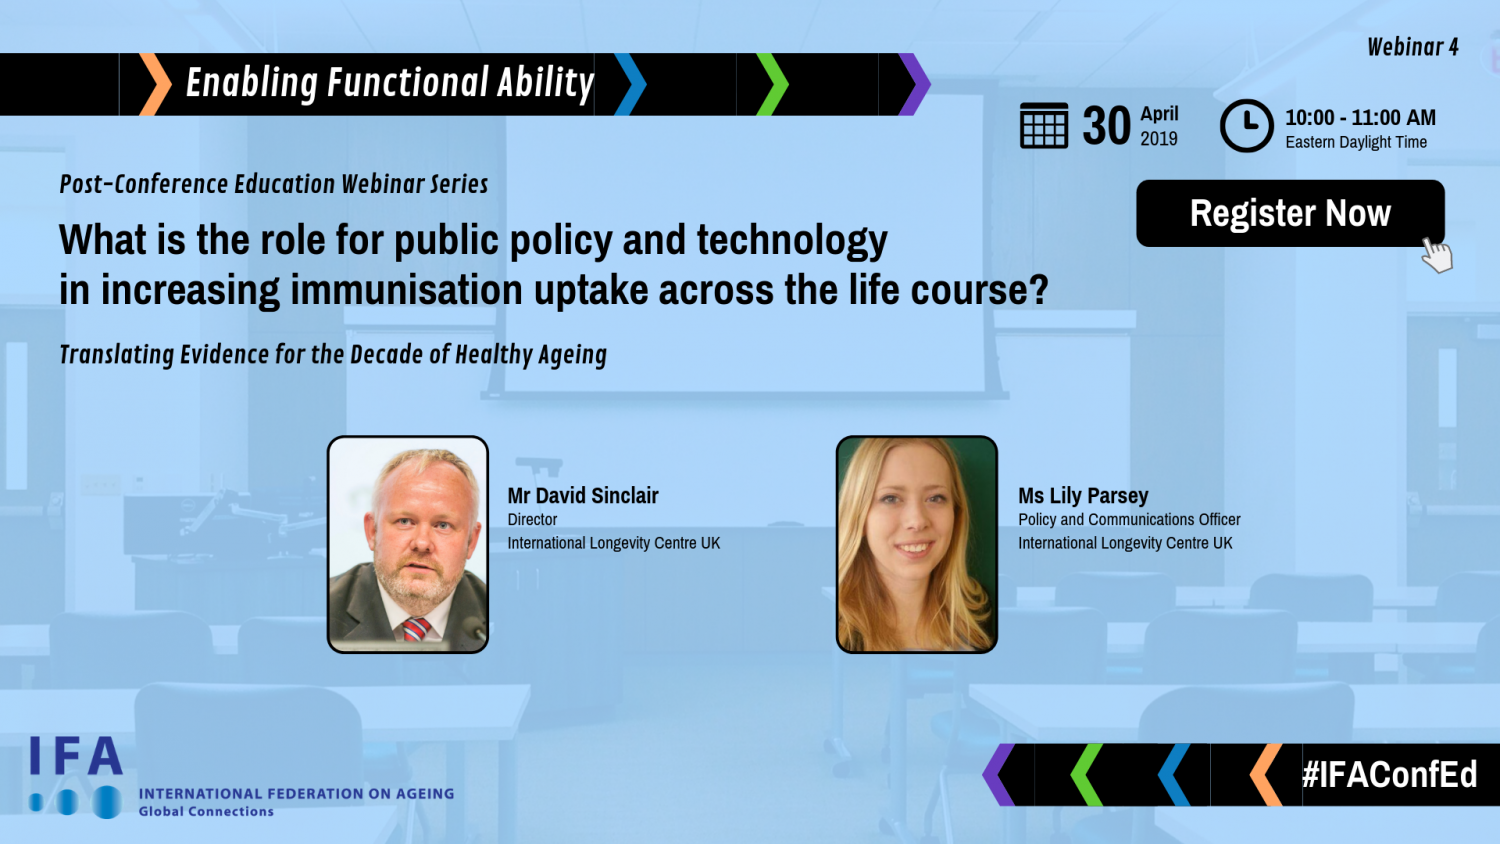 Webinar Announcement: What is the role for public policy and technology in increasing immunisation uptake across the life course?